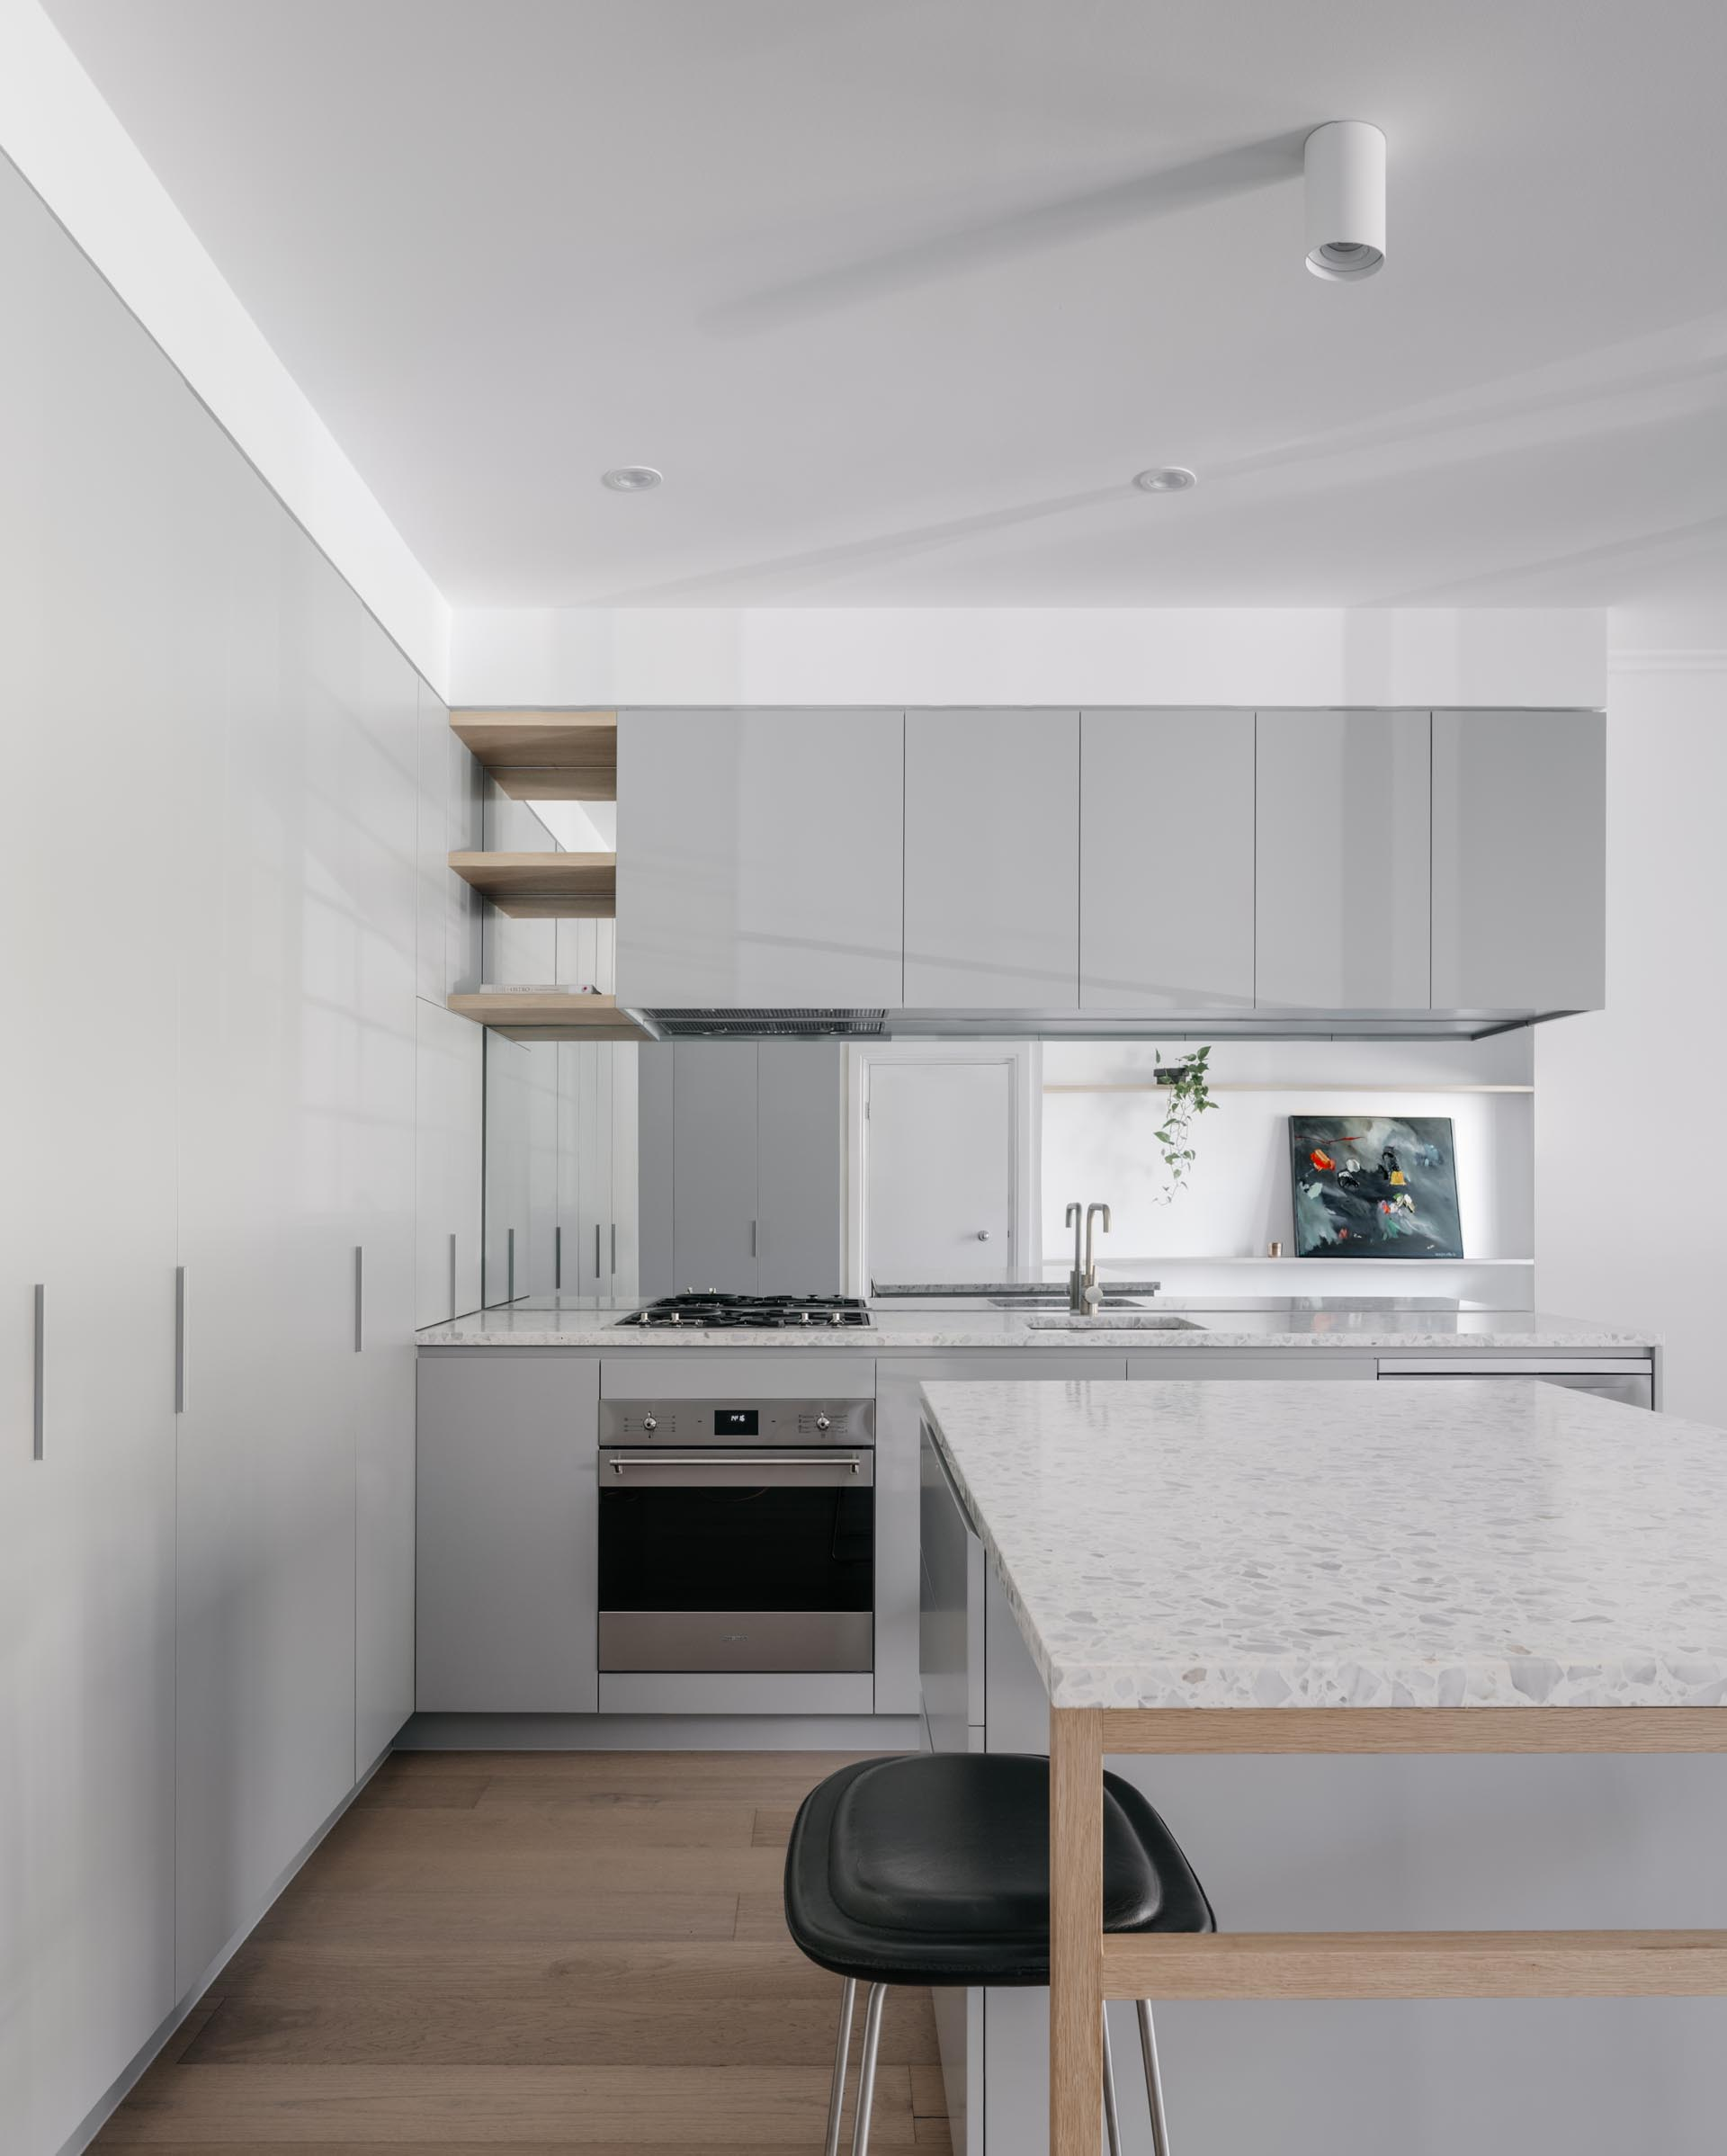 A modern kitchen with minimalist gray cabinets, white stone countertops, and oak flooring.